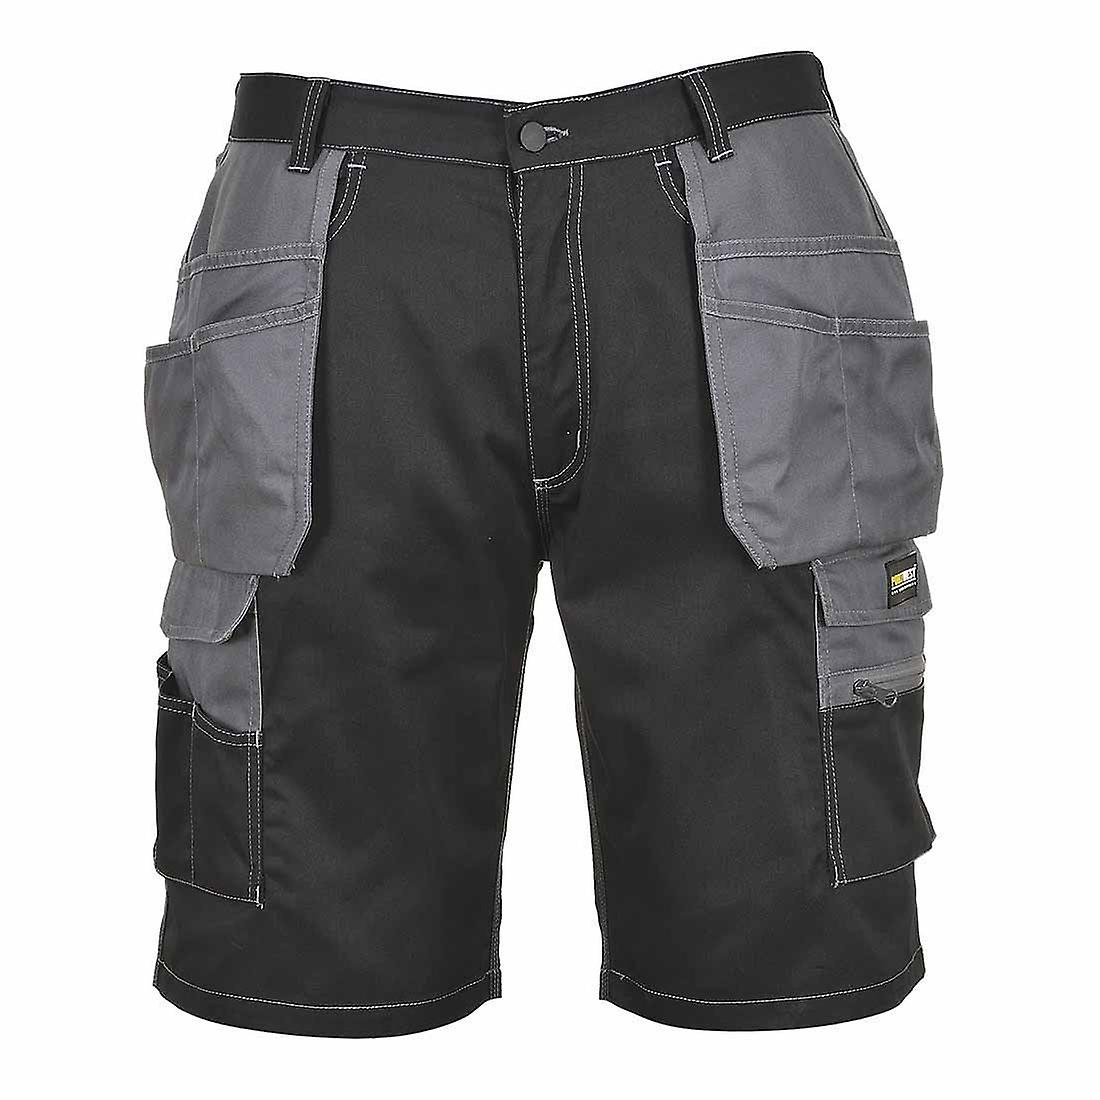 Portwest - Granite Workwear Holster Two Tone Shorts